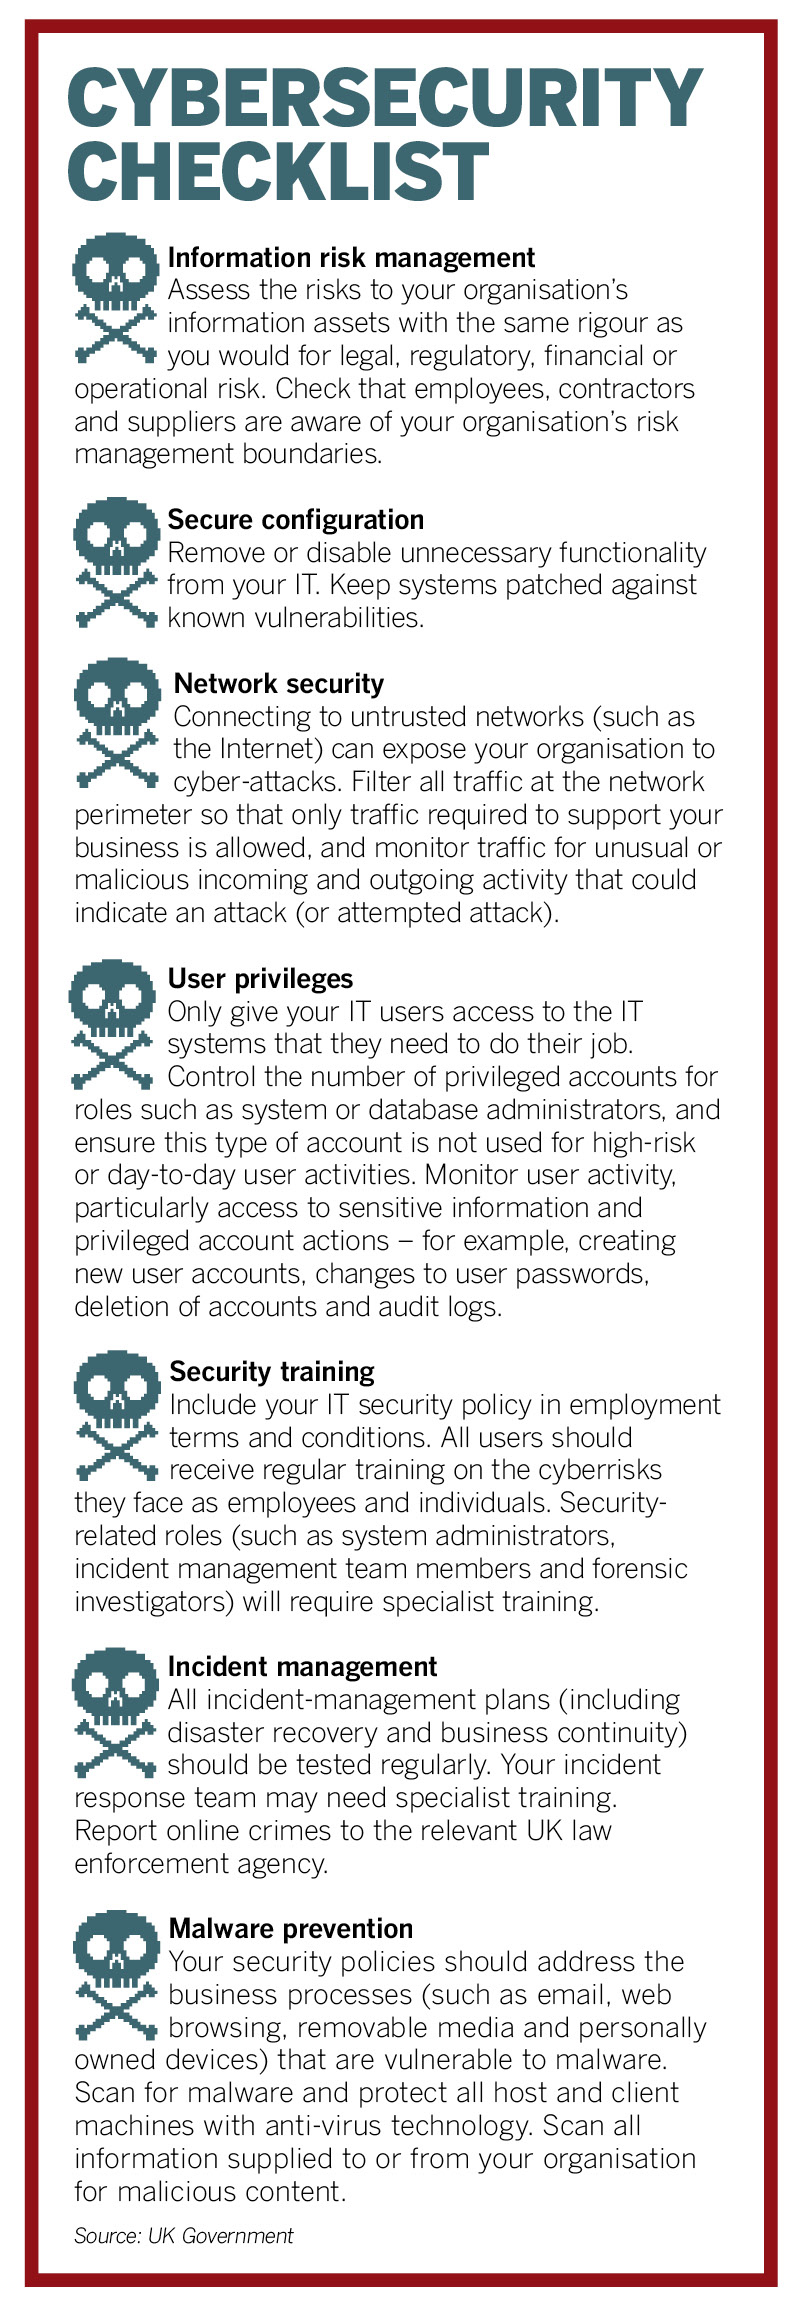 Cyber security checklist